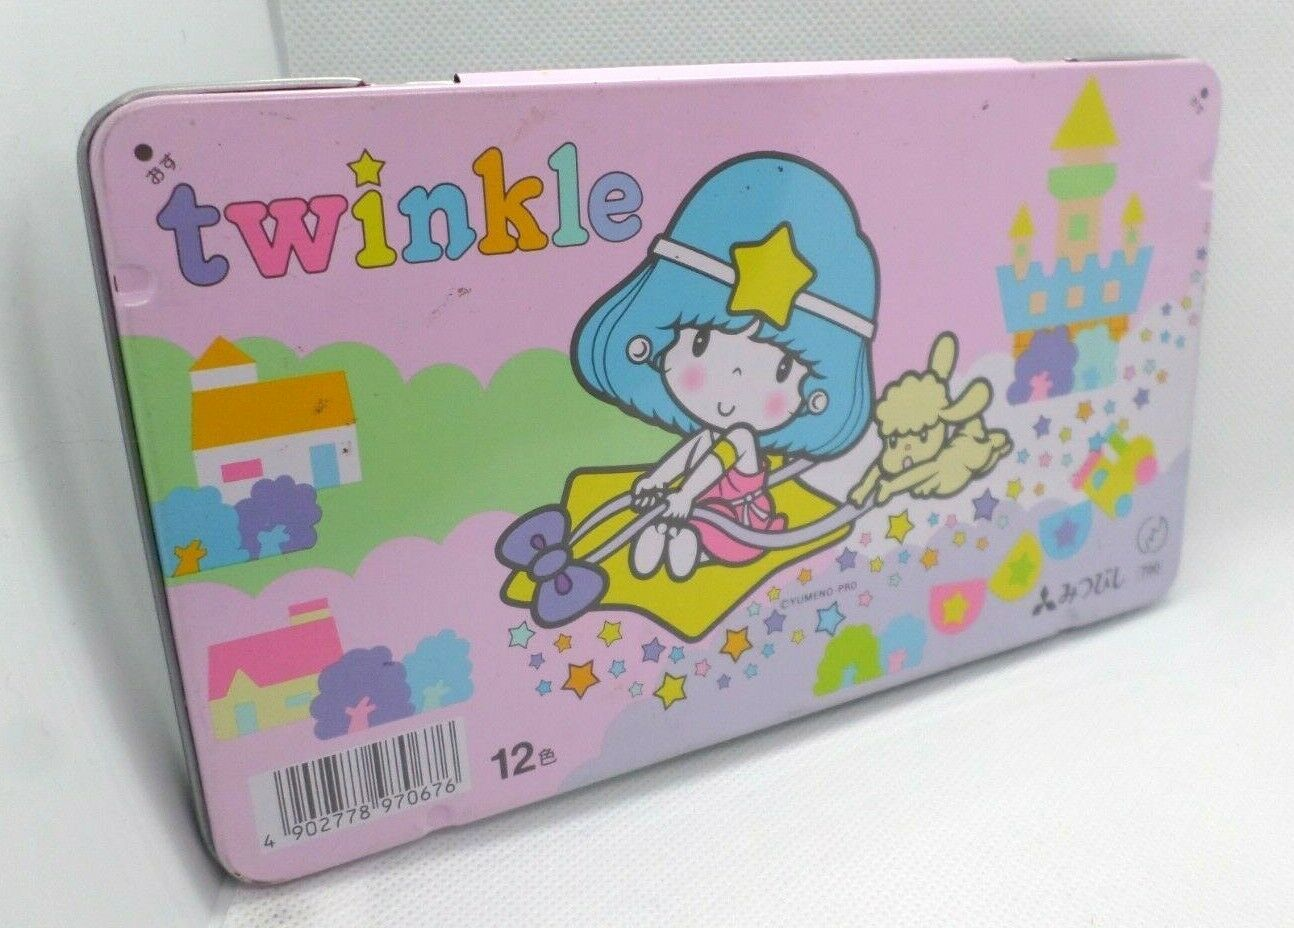 Mitsubishi Colored Pencils 12pc Pink Twinkle Tin 1988 Sanrio Style Pastel 80's